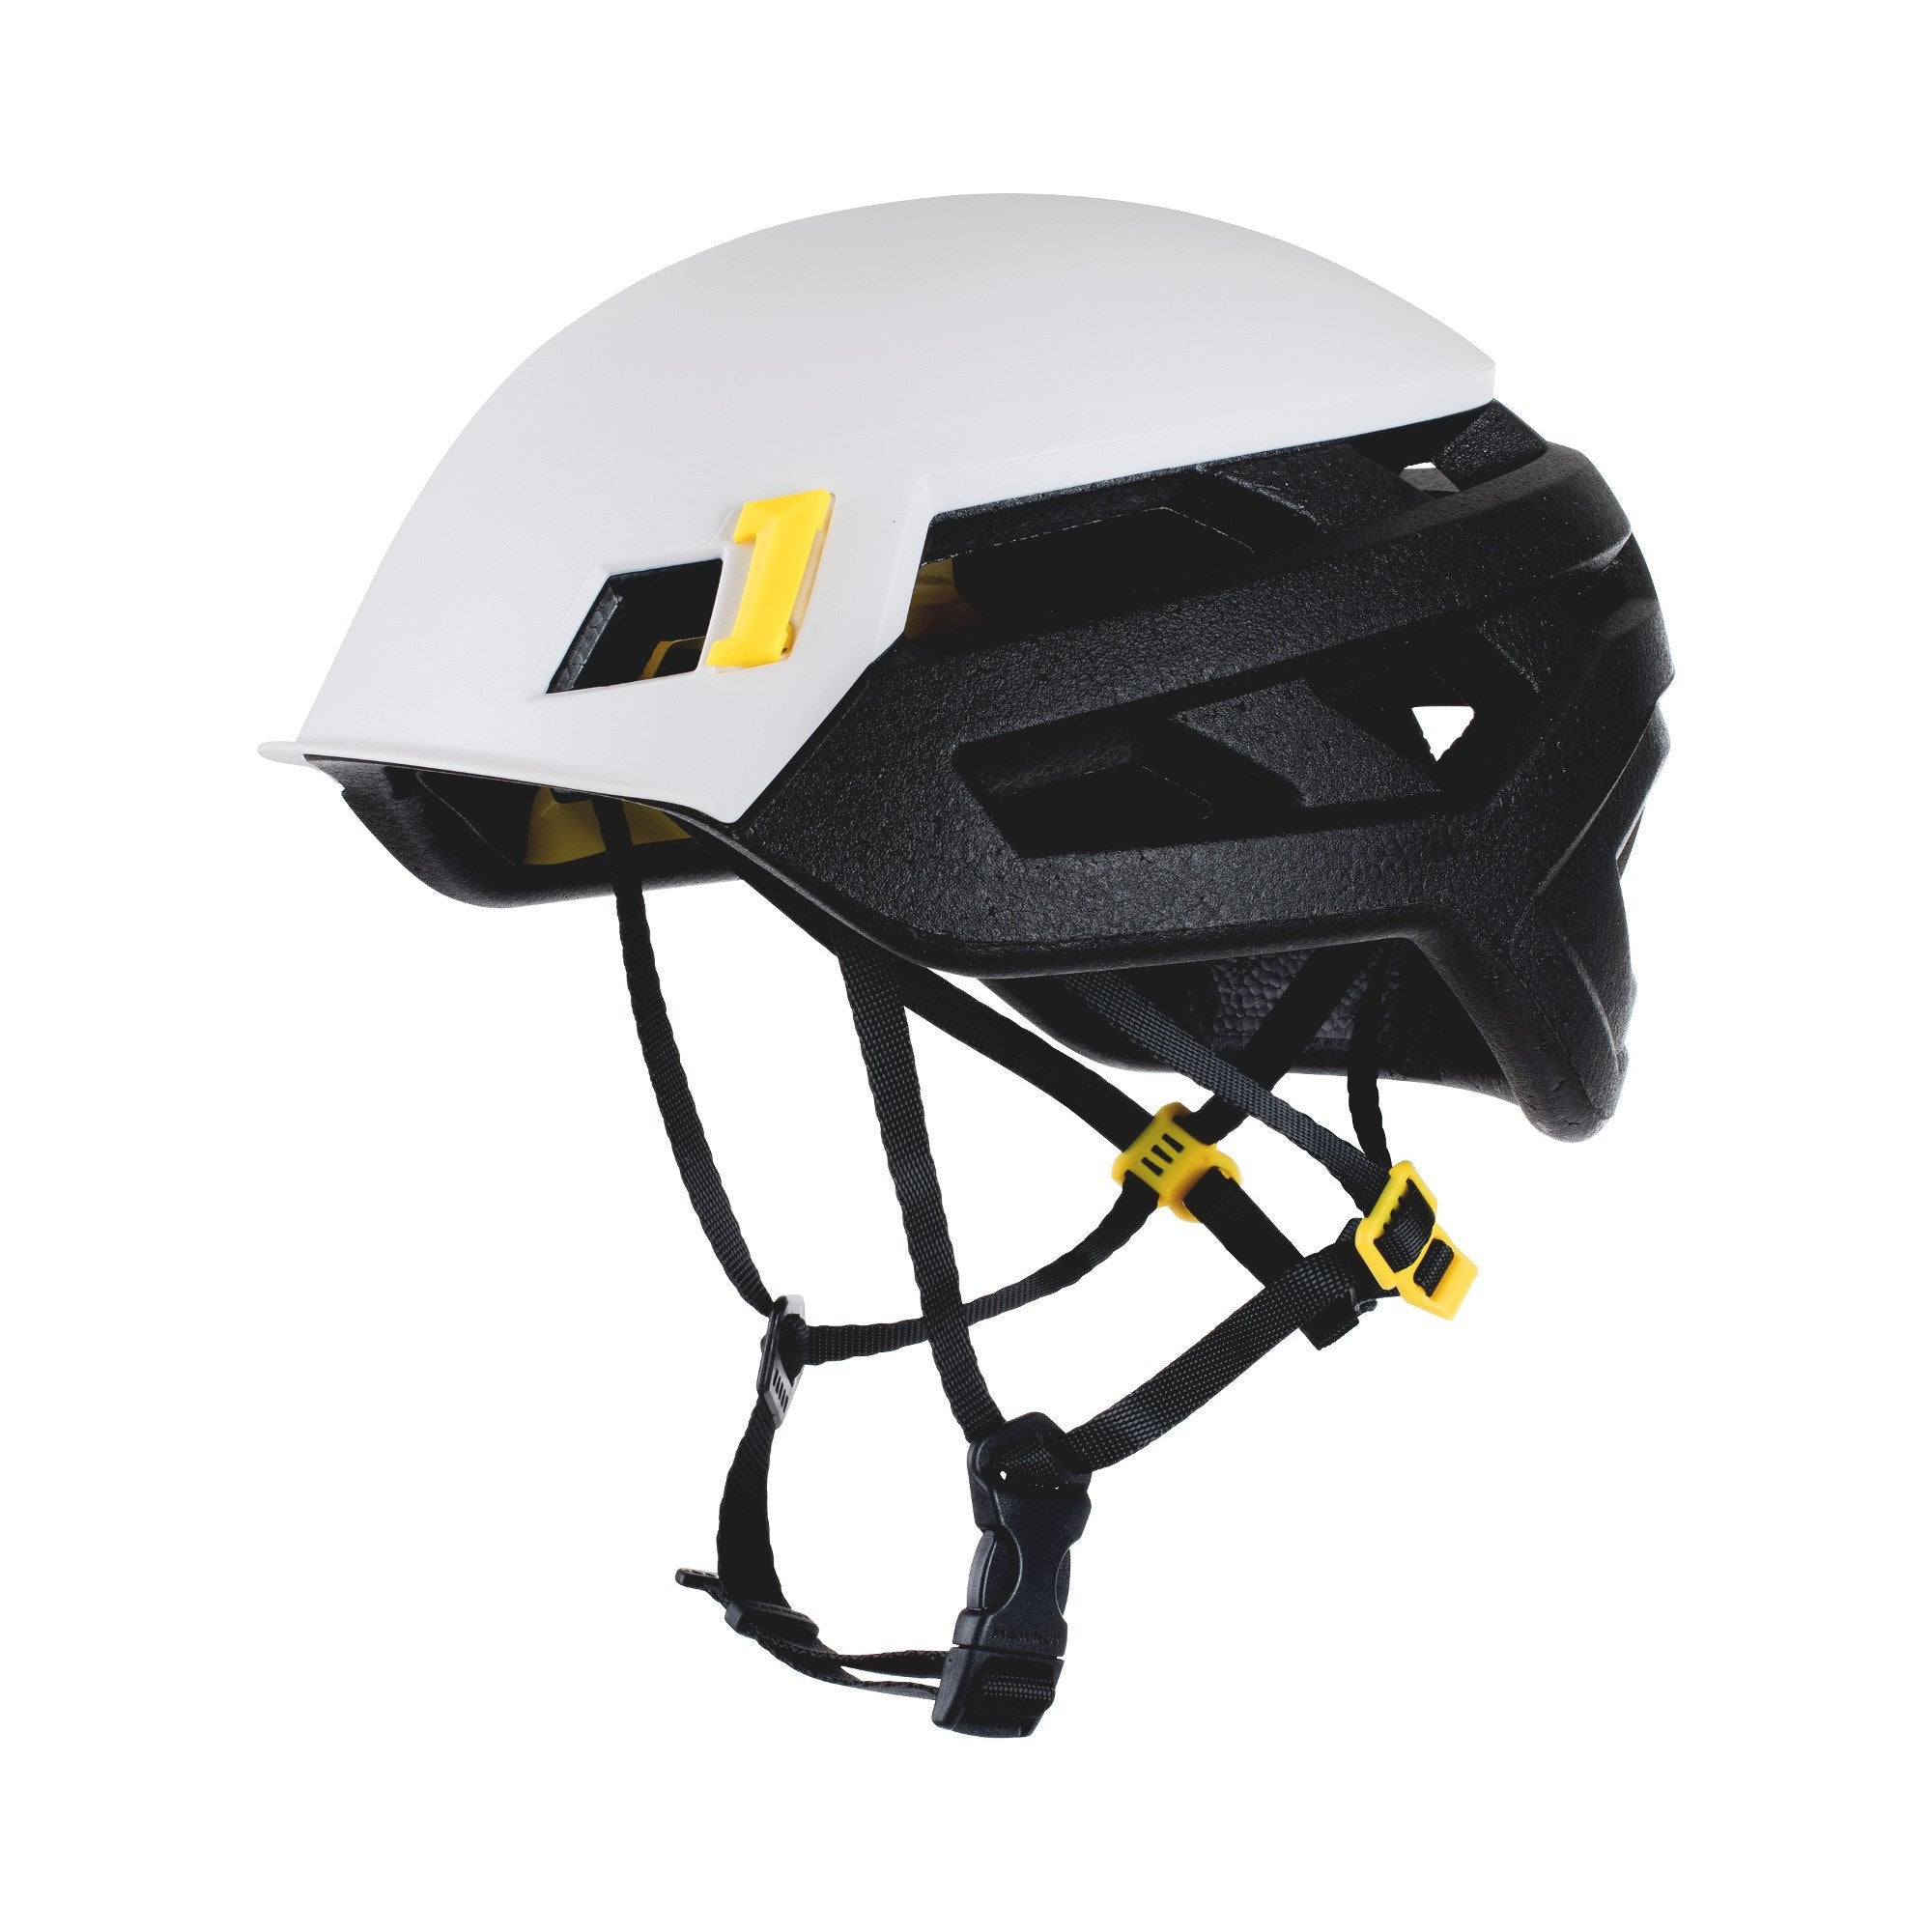 Mammut Wall Rider MIPS climbing helmet, in white and black colours